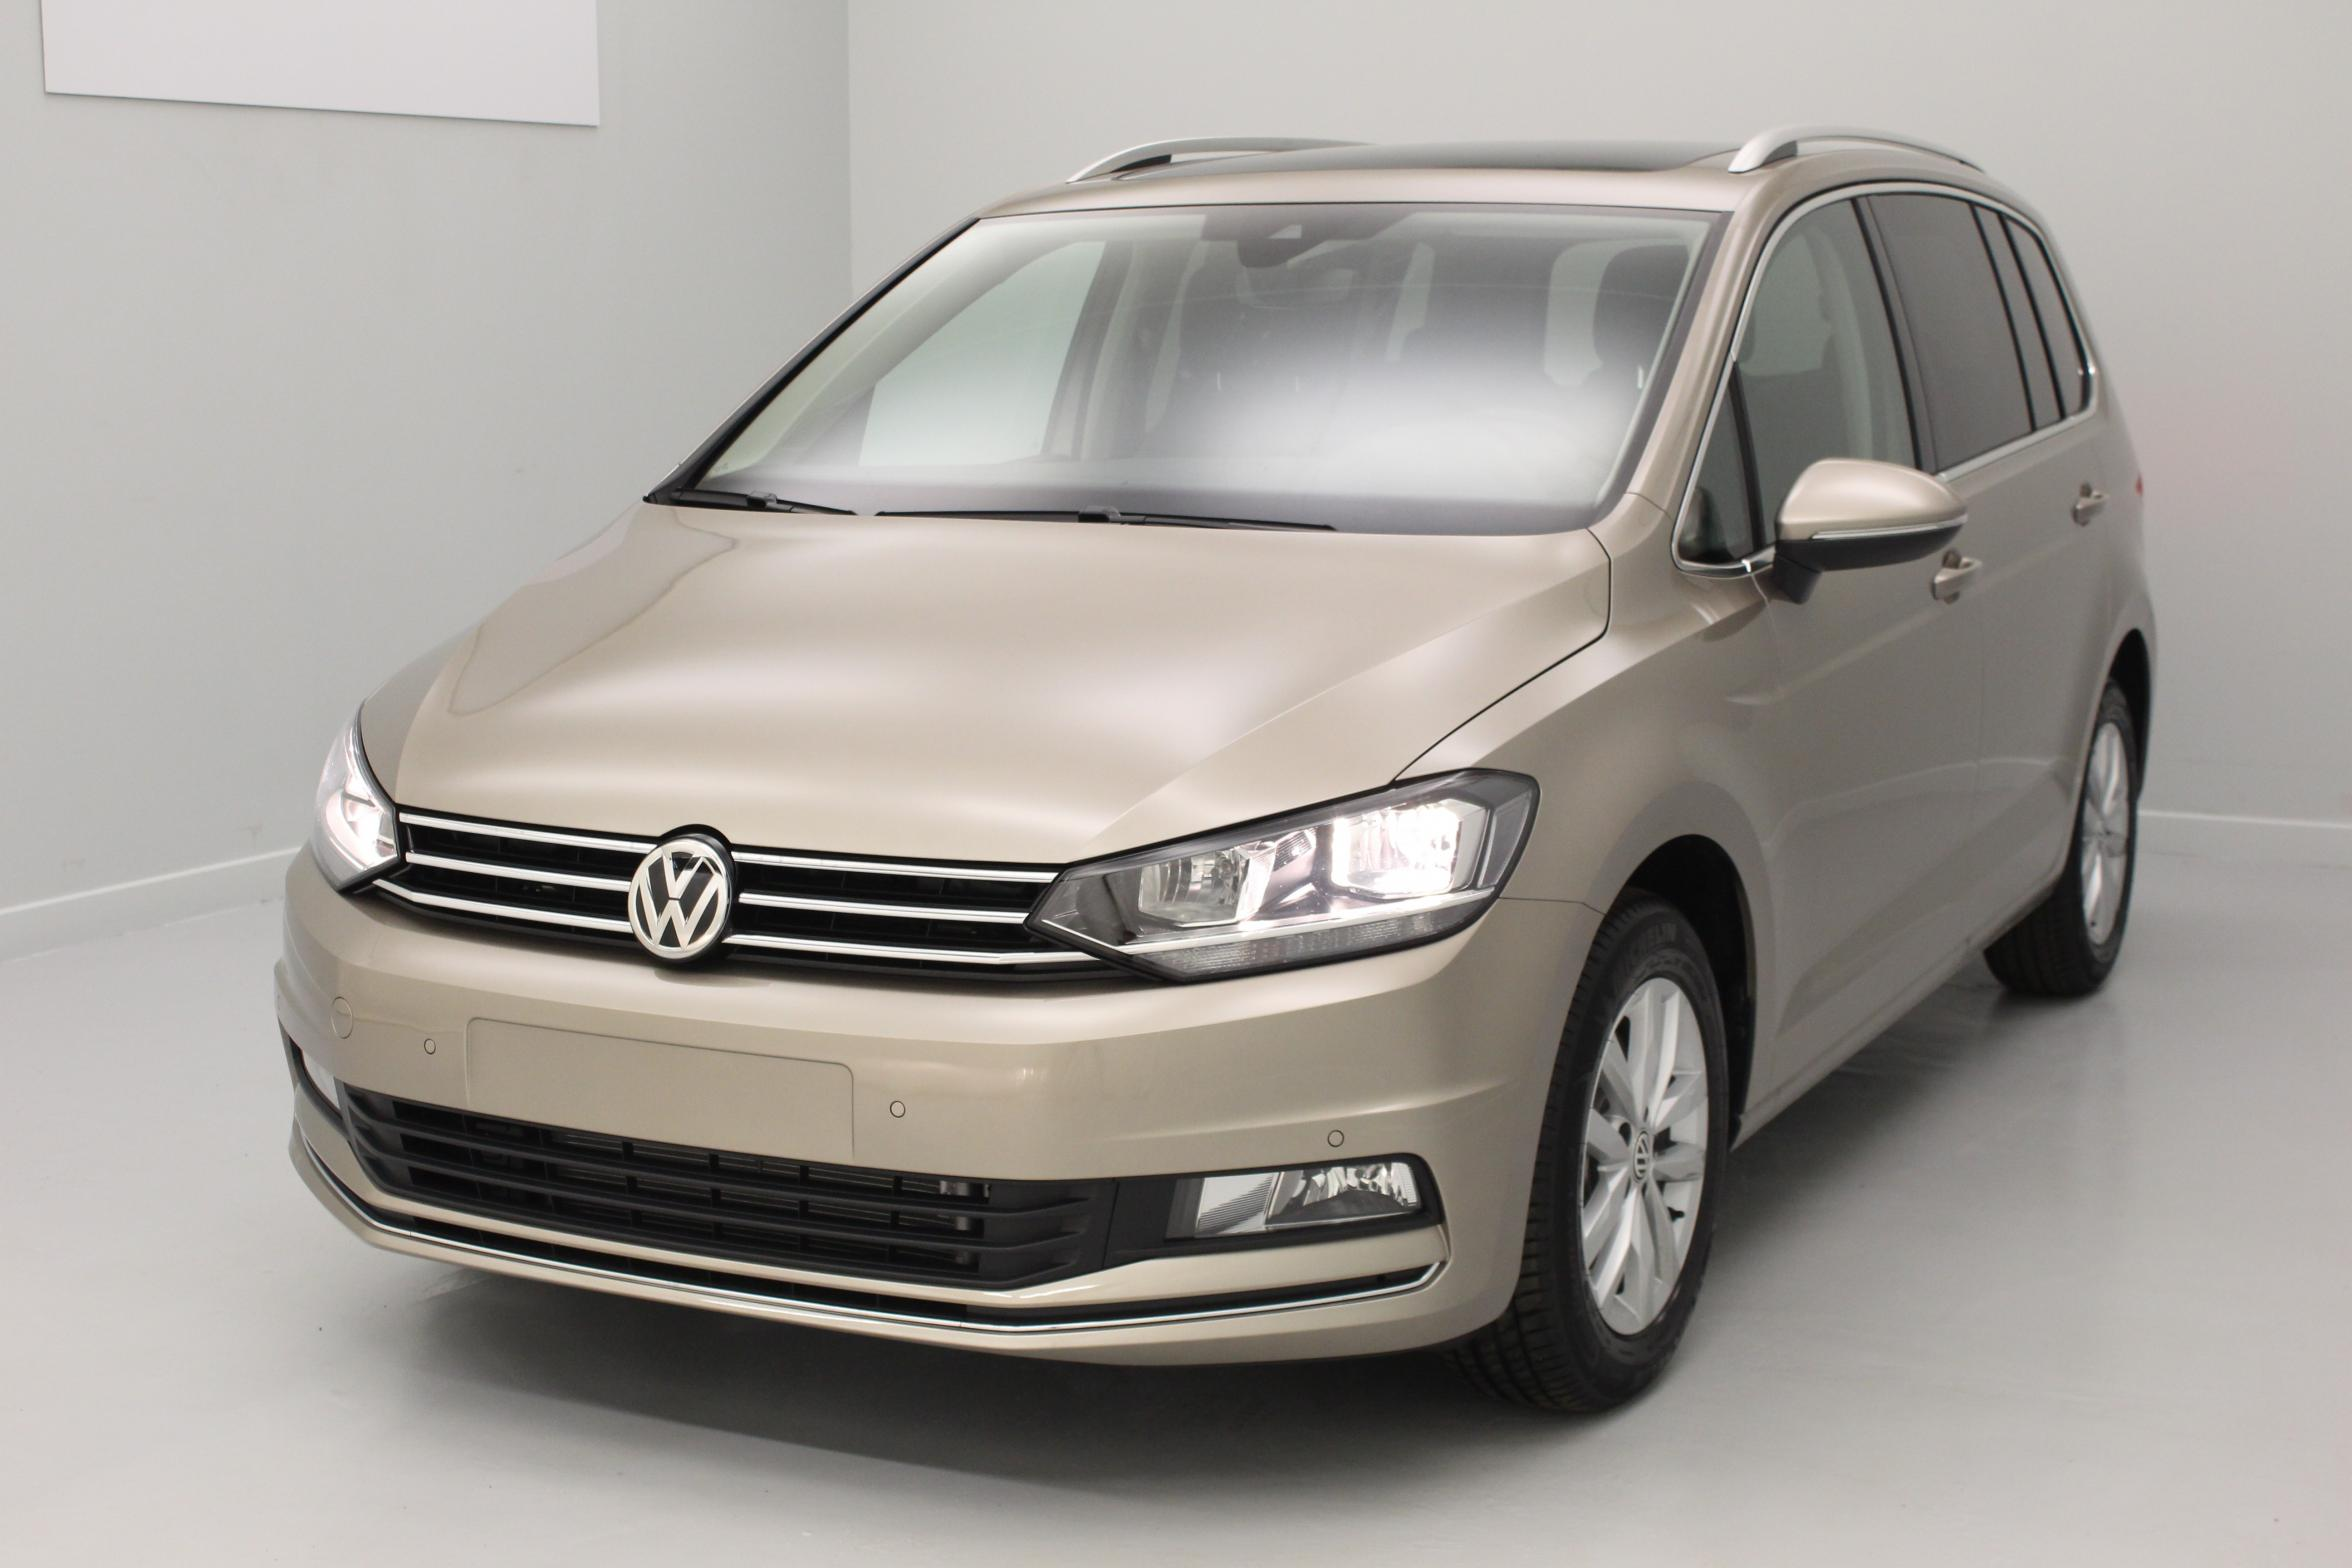 volkswagen touran 7 places diesel. Black Bedroom Furniture Sets. Home Design Ideas